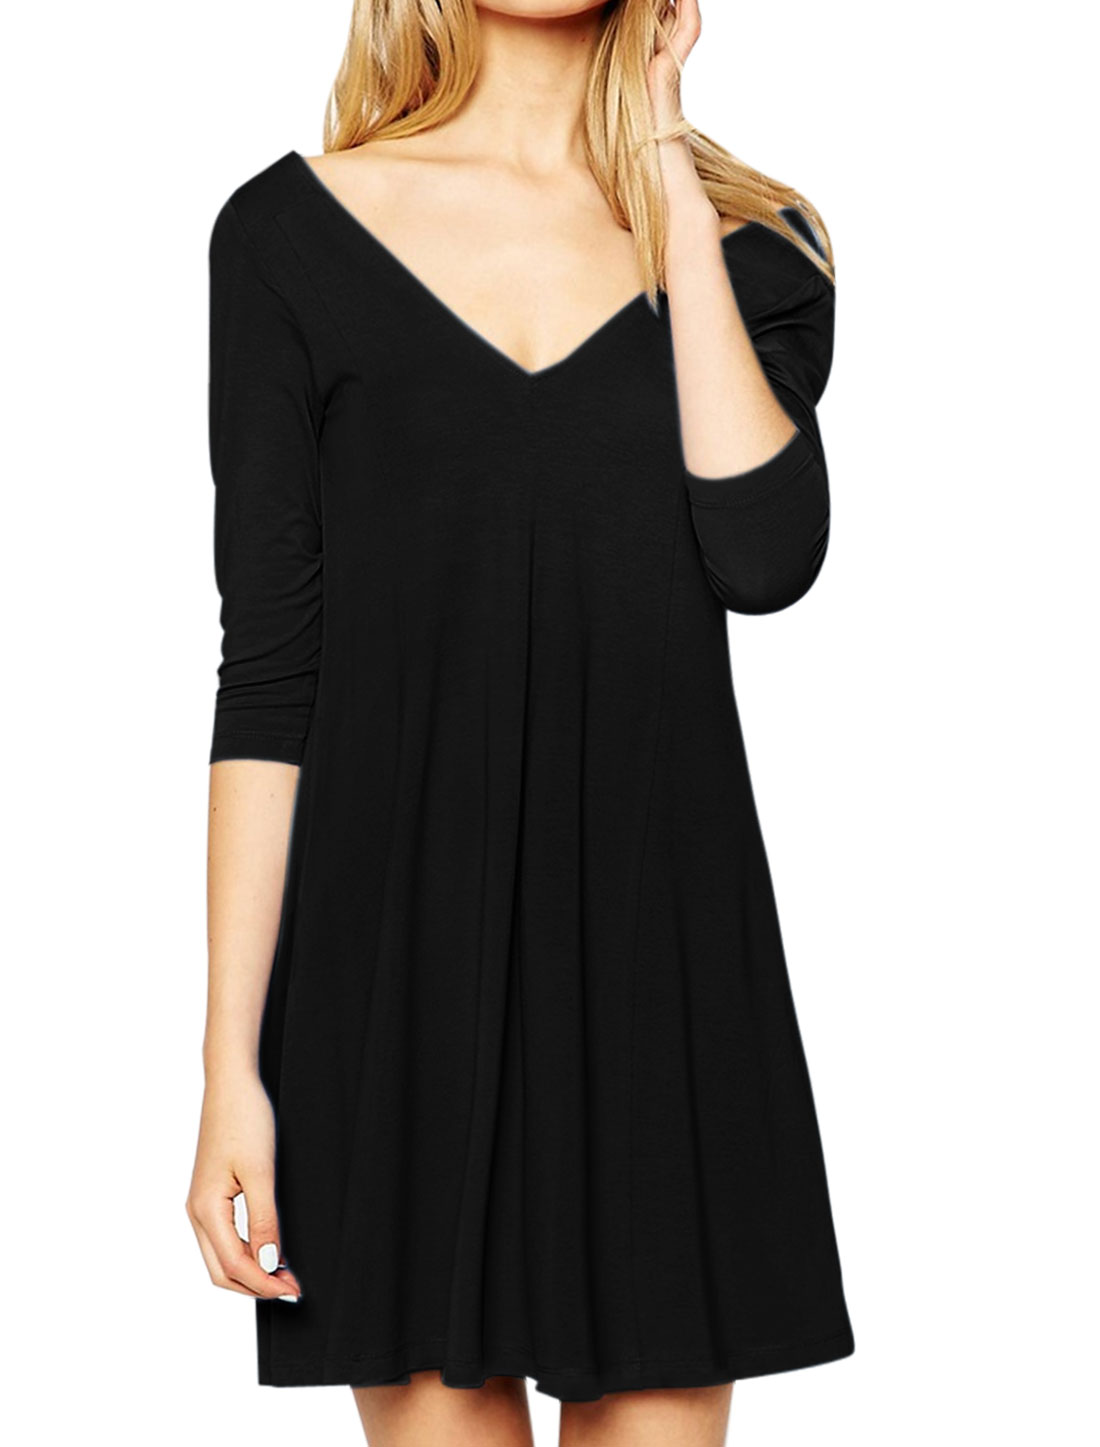 Women Deep V Neck 3/4 Sleeves Unlined Casual Tunic Dress Black M